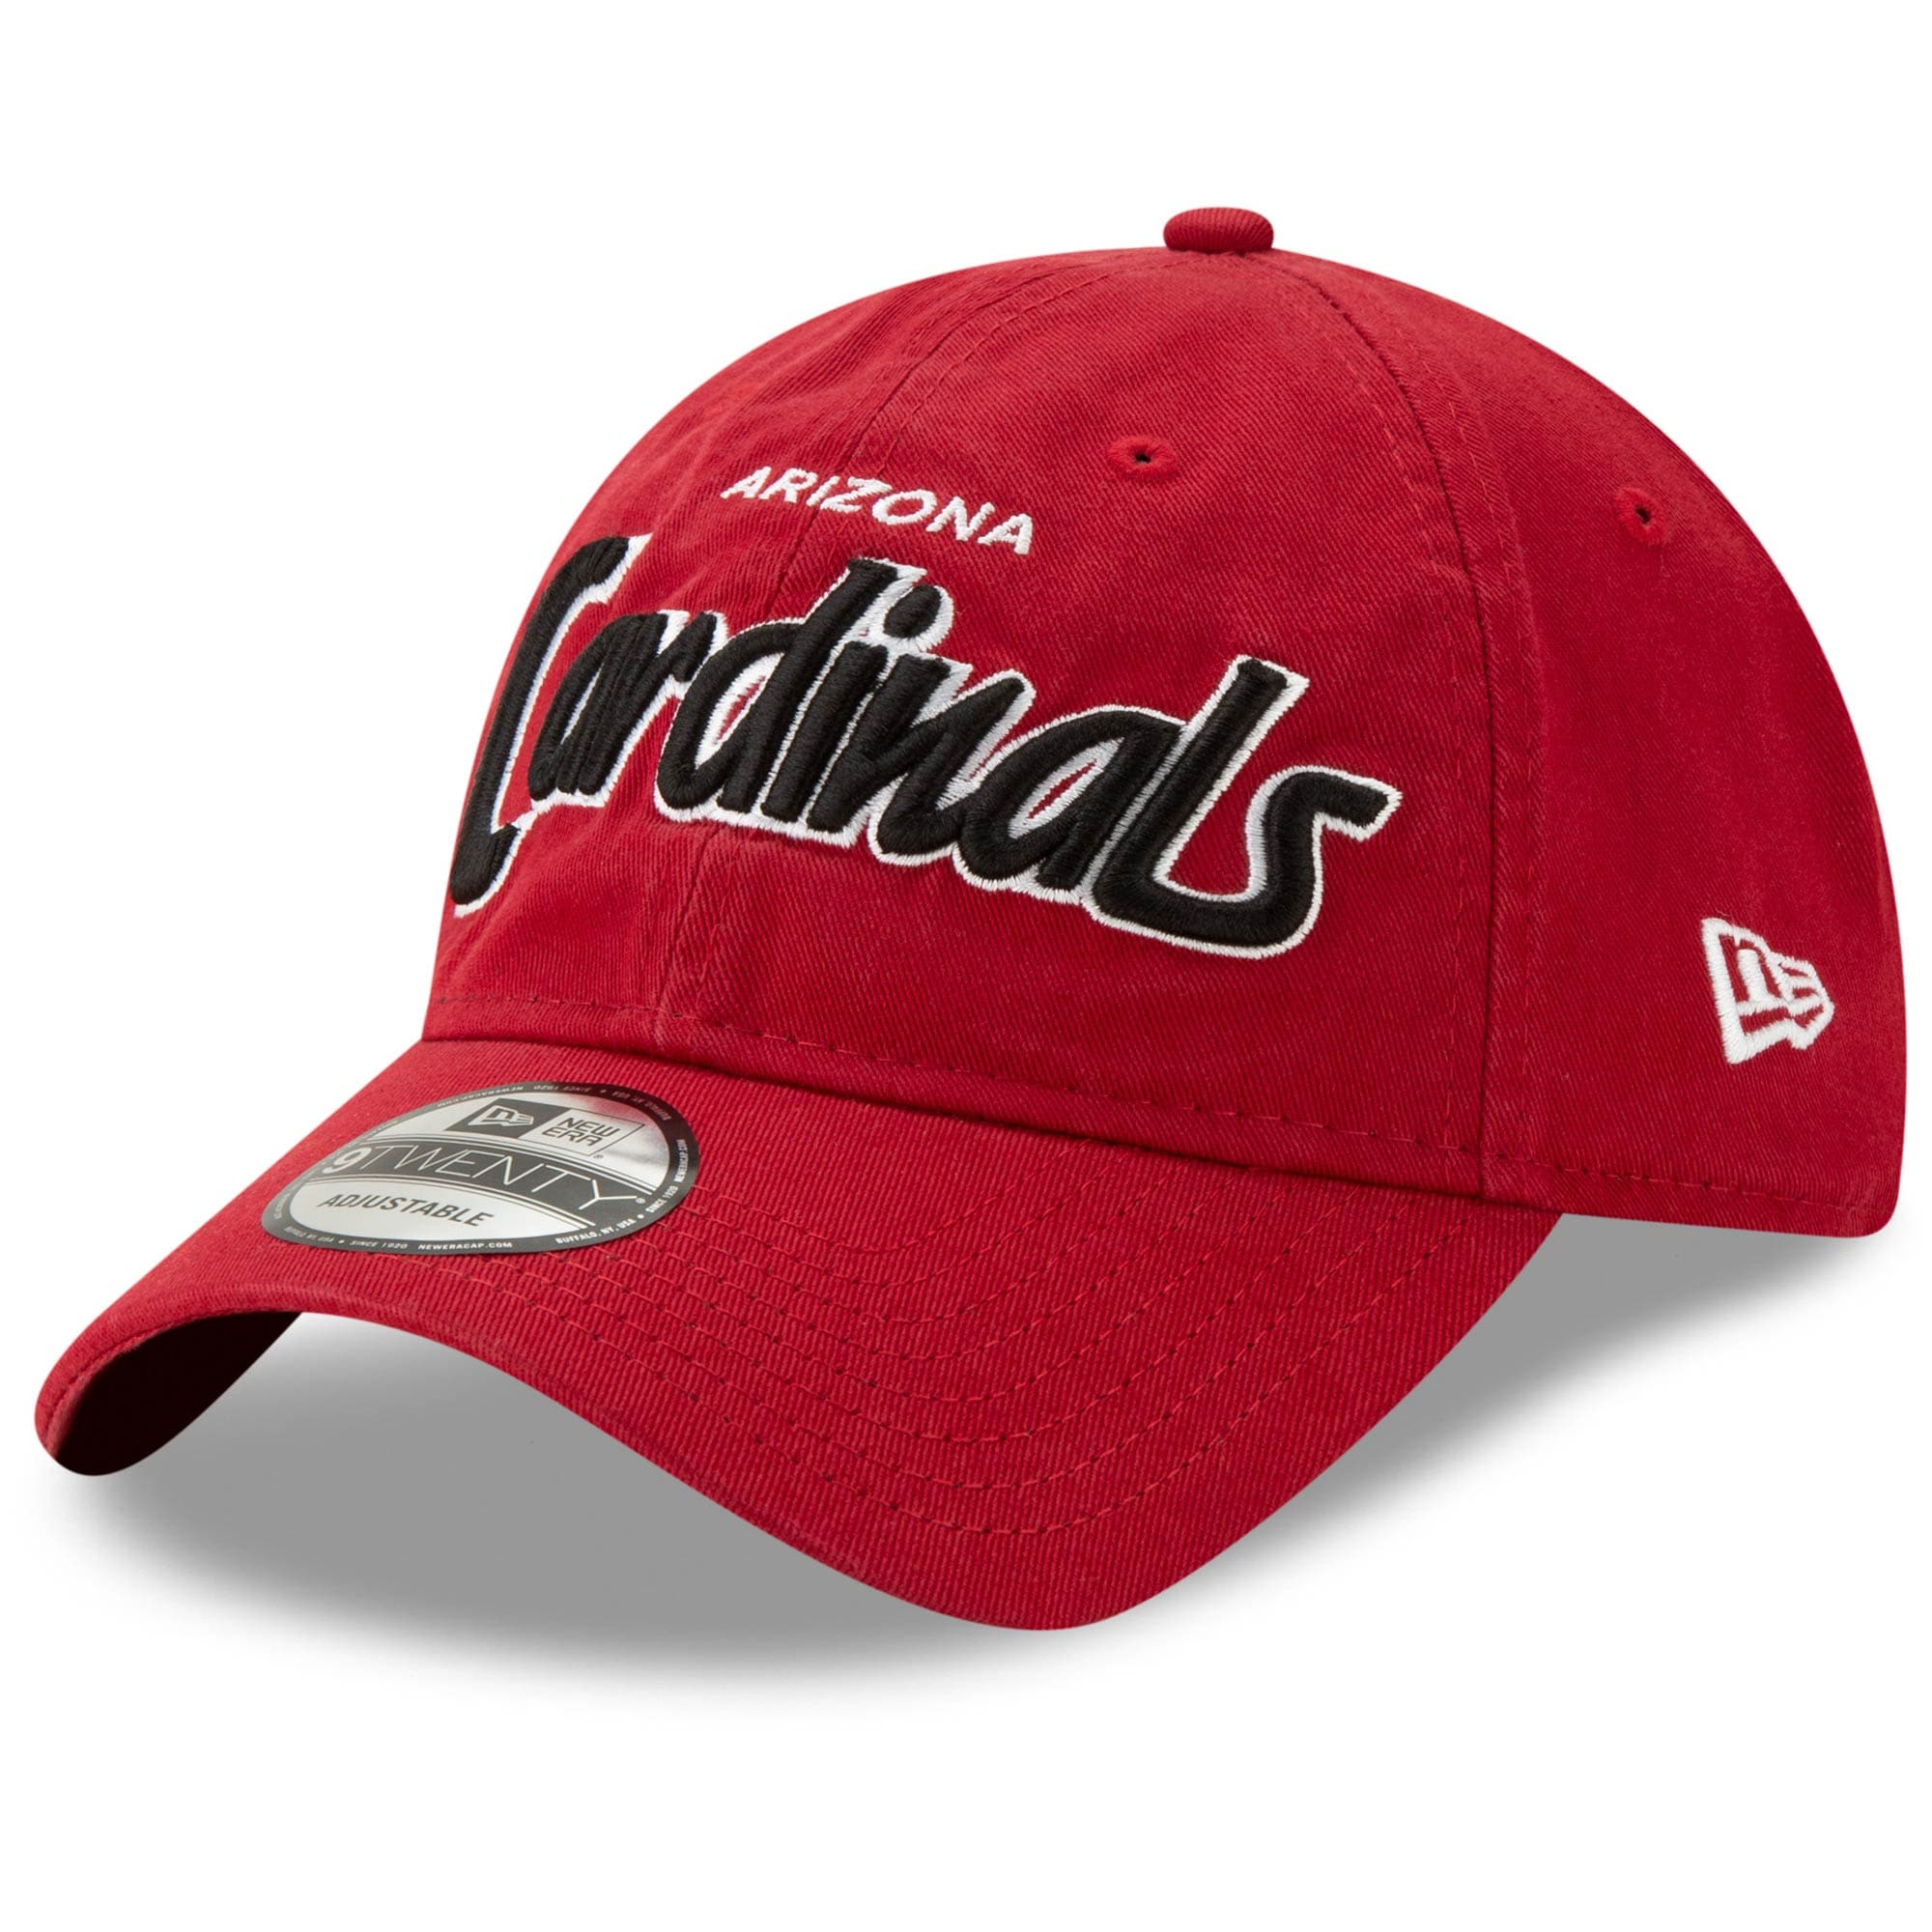 Arizona Cardinals New Era Retro Script II 9TWENTY Adjustable Snapback Hat - Cardinal